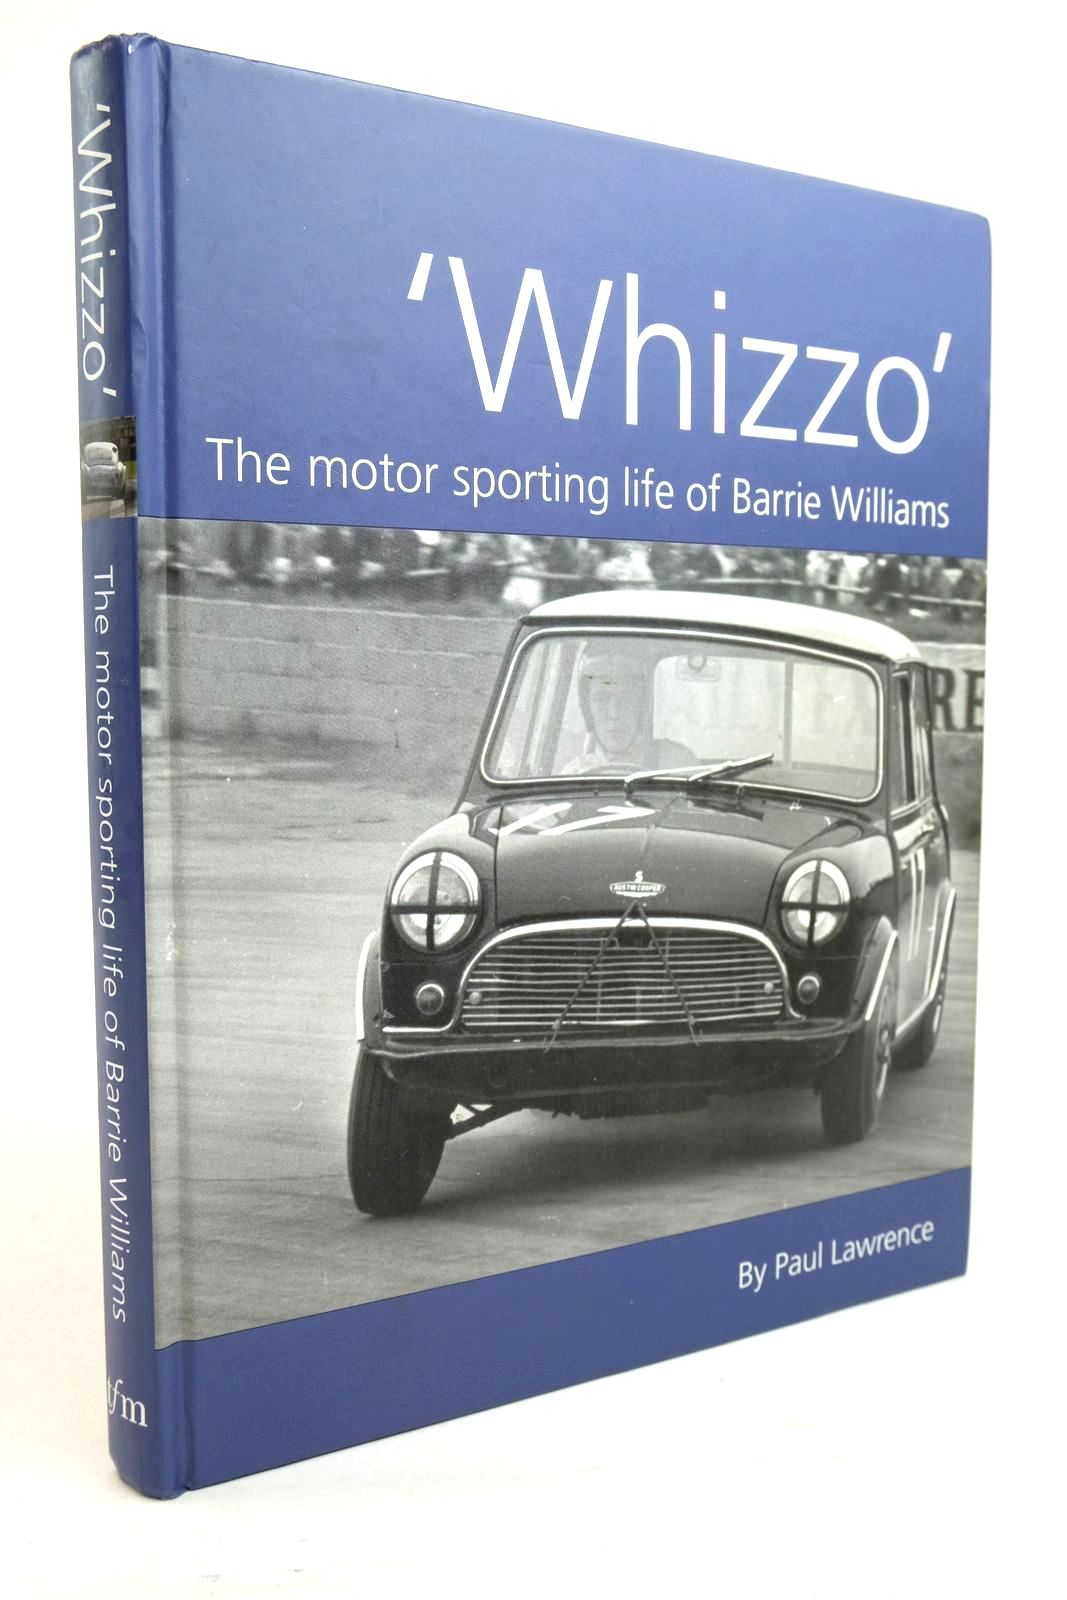 Photo of WHIZZO THE MOTOR SPORTING LIFE OF BARRIE WILLIAMS written by Lawrence, Paul published by TFM Publishing (STOCK CODE: 1321187)  for sale by Stella & Rose's Books